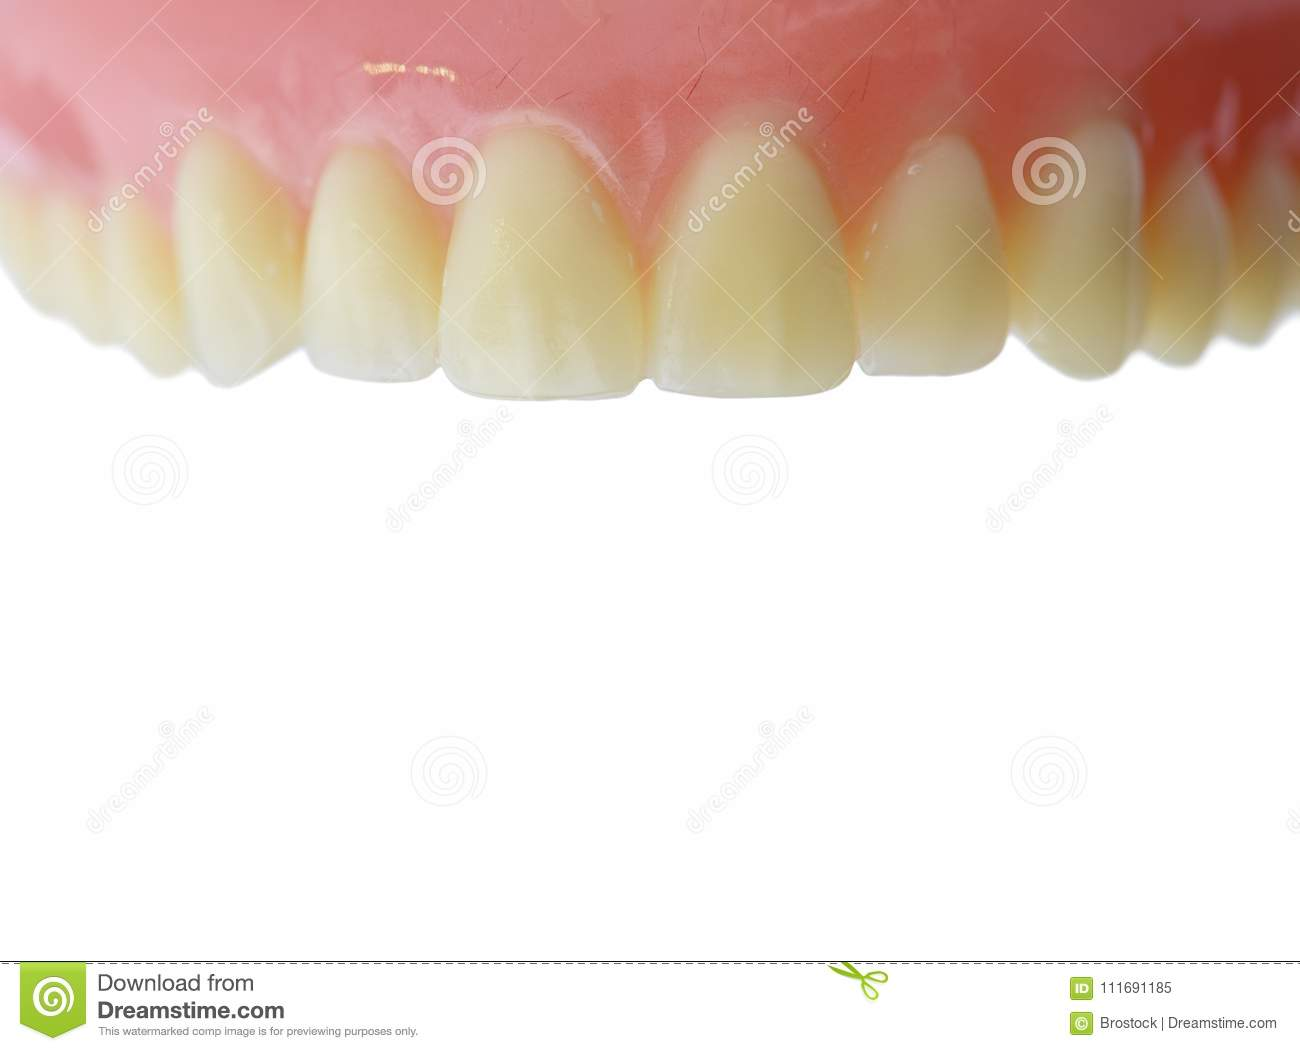 Teeth Gum Anatomy Model With Copy Space. Isolated On White ...